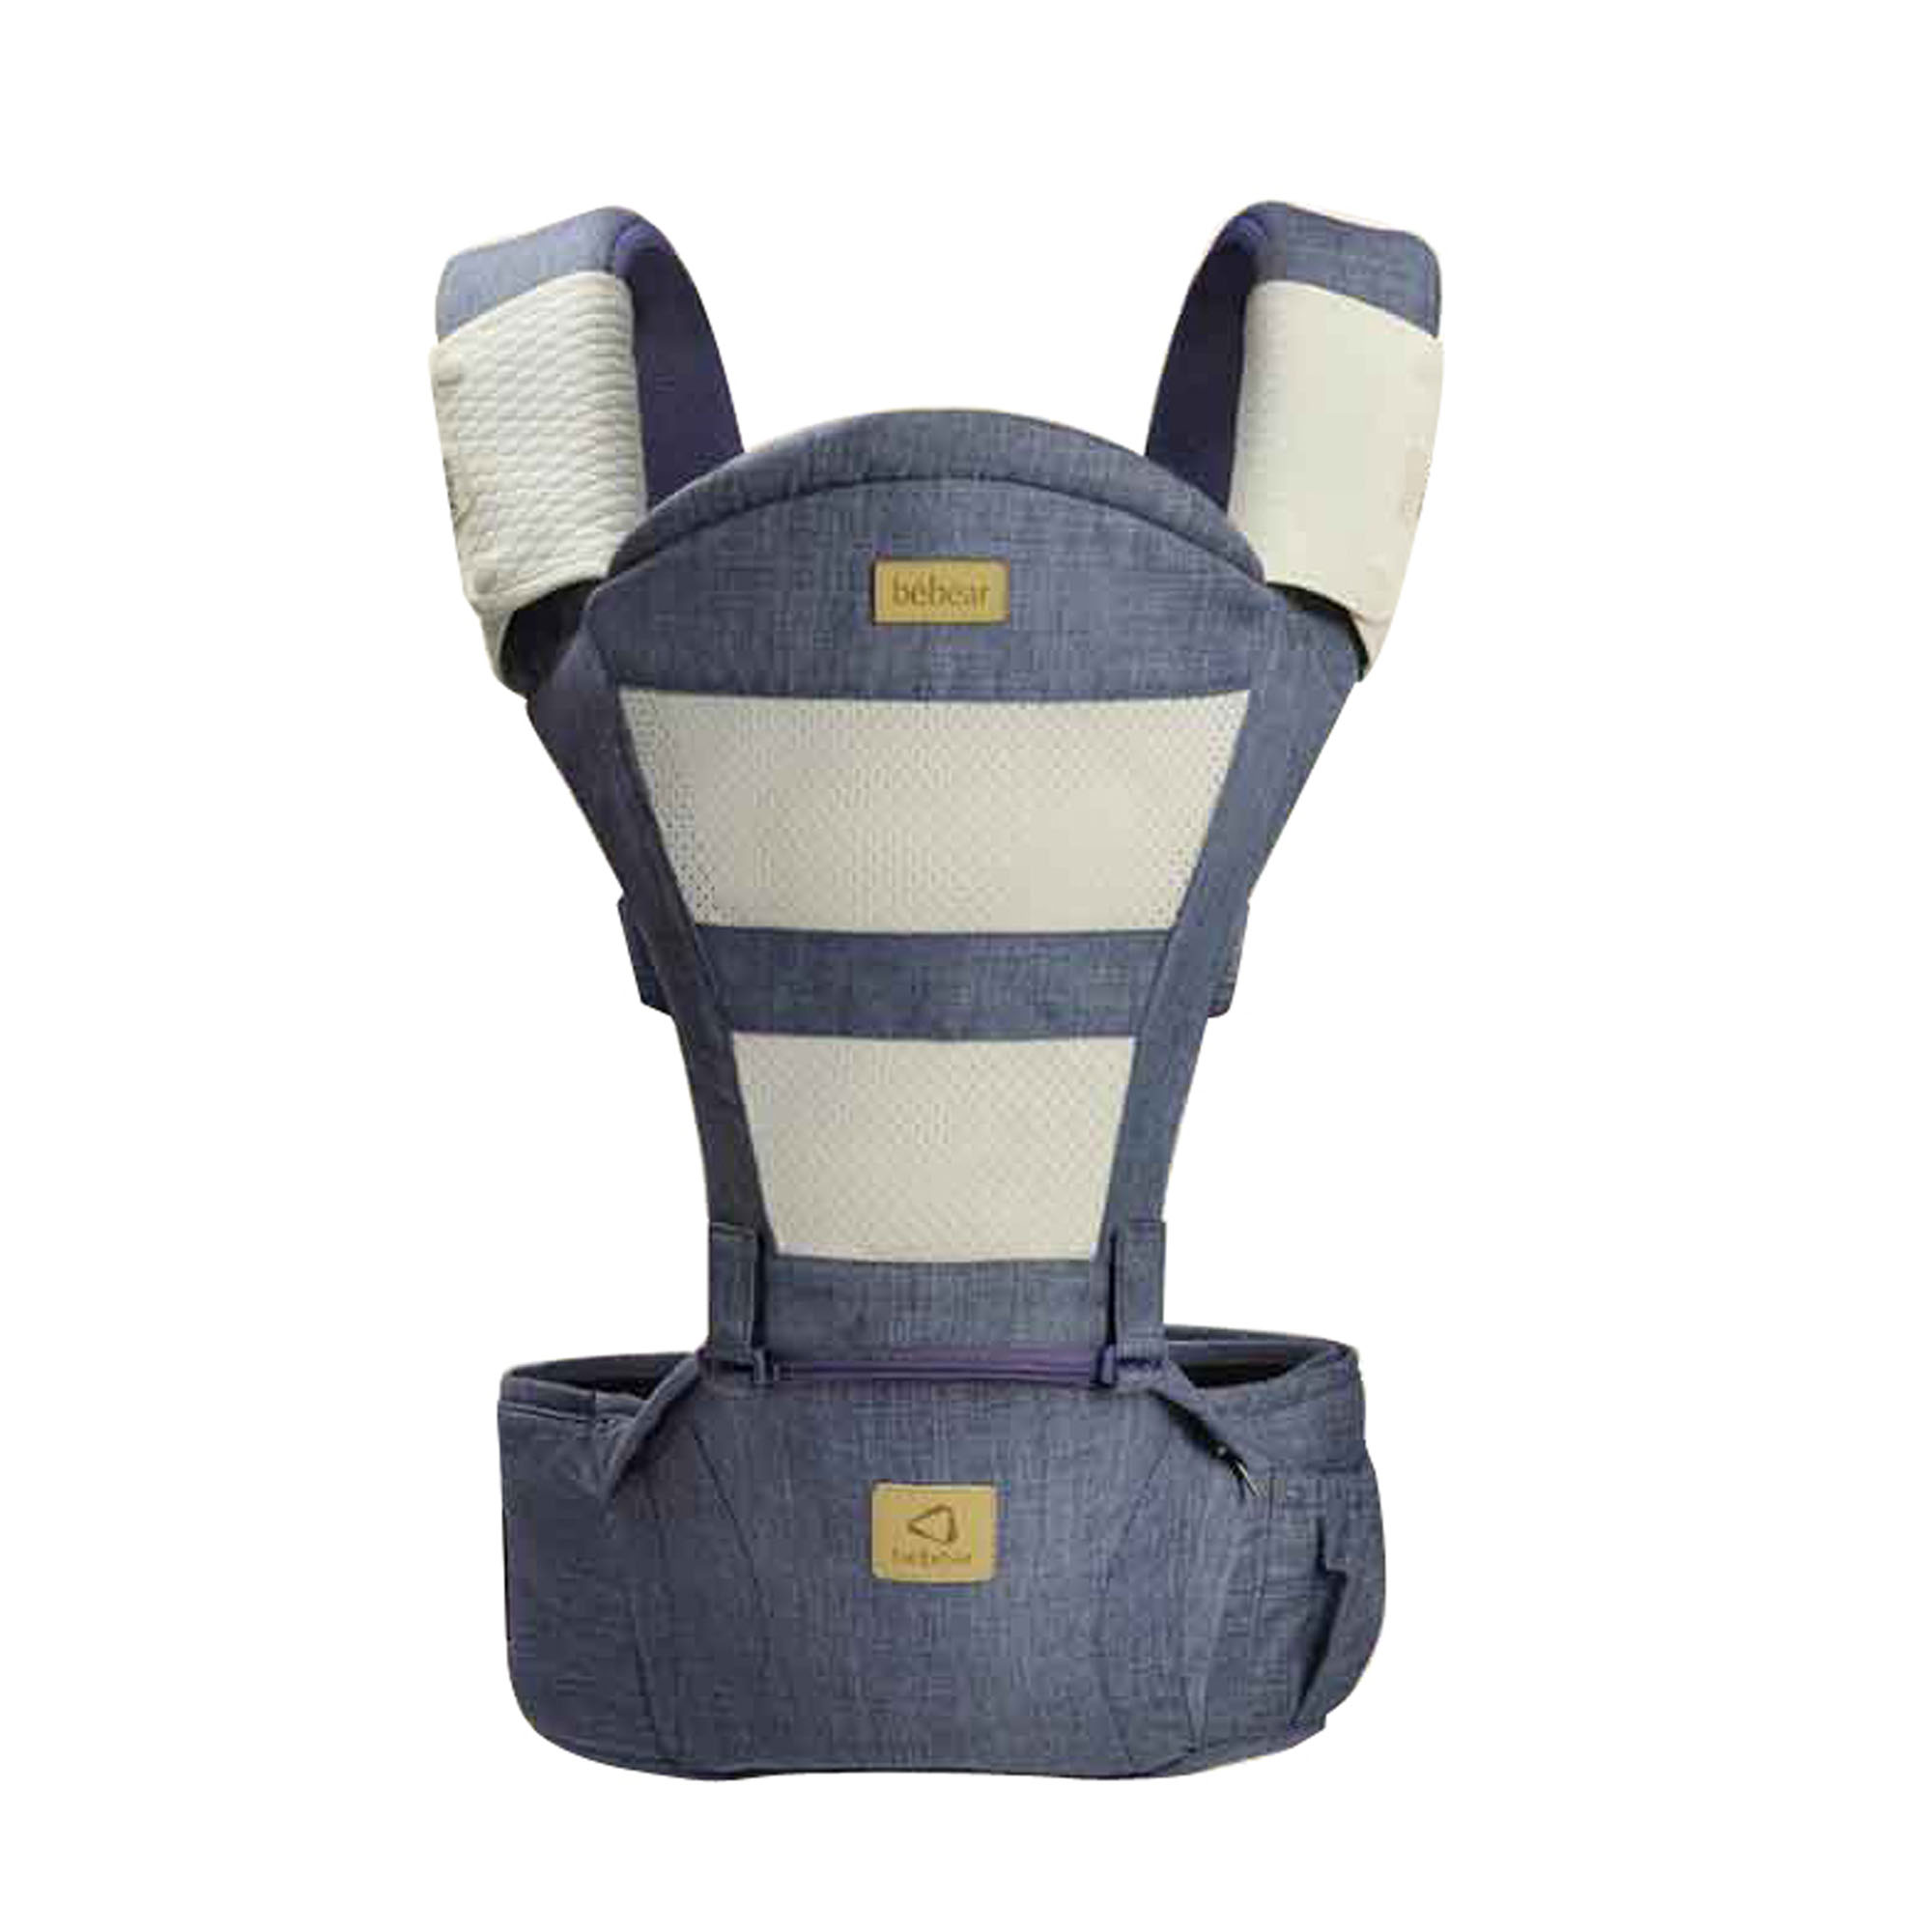 Ergonomic baby Carrier Sling - Purple